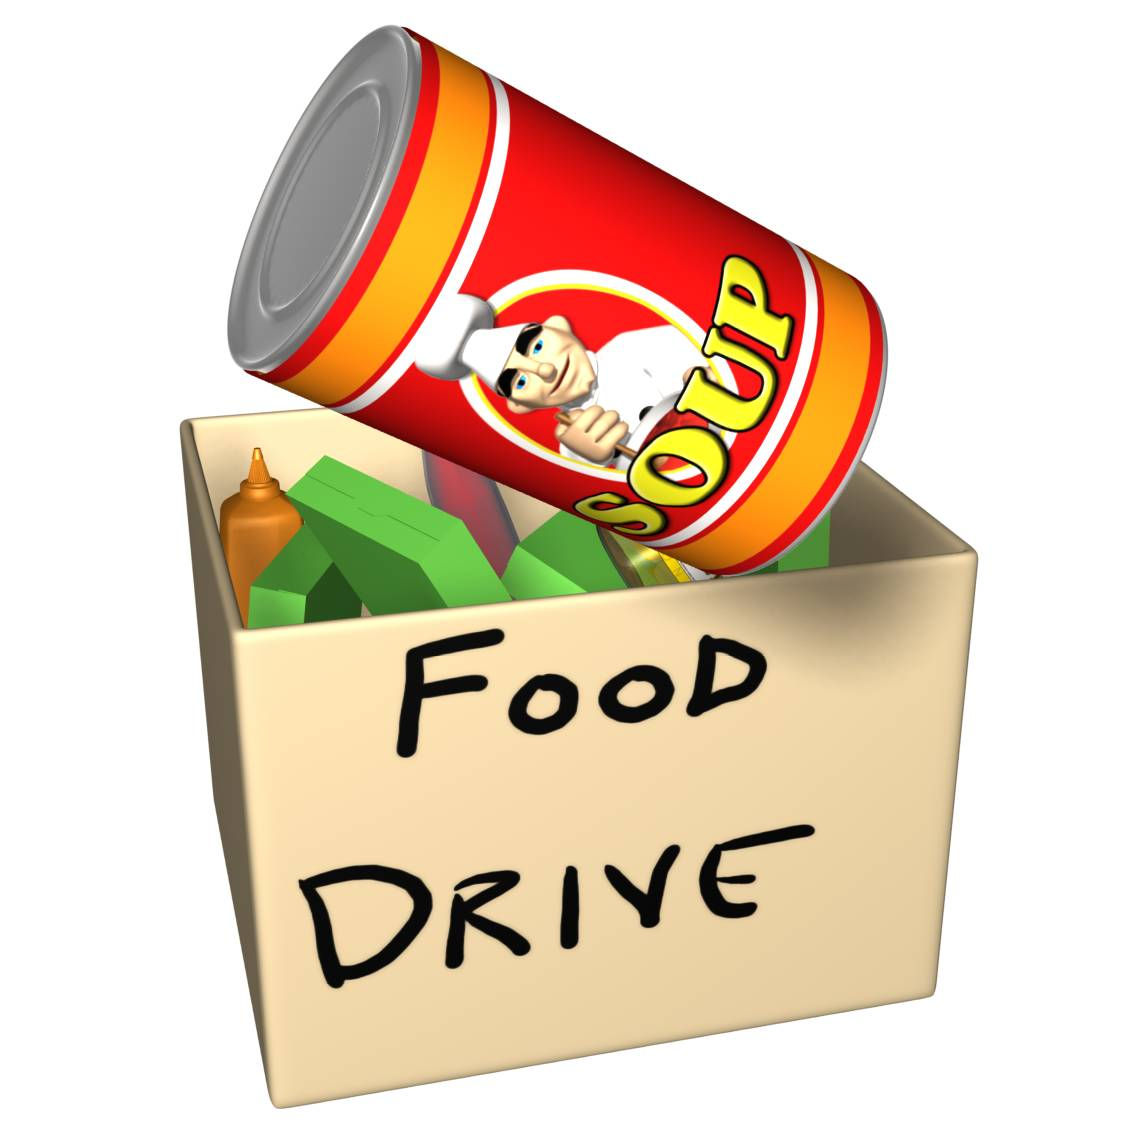 1144x1144 Canned Food Drive Clip Art